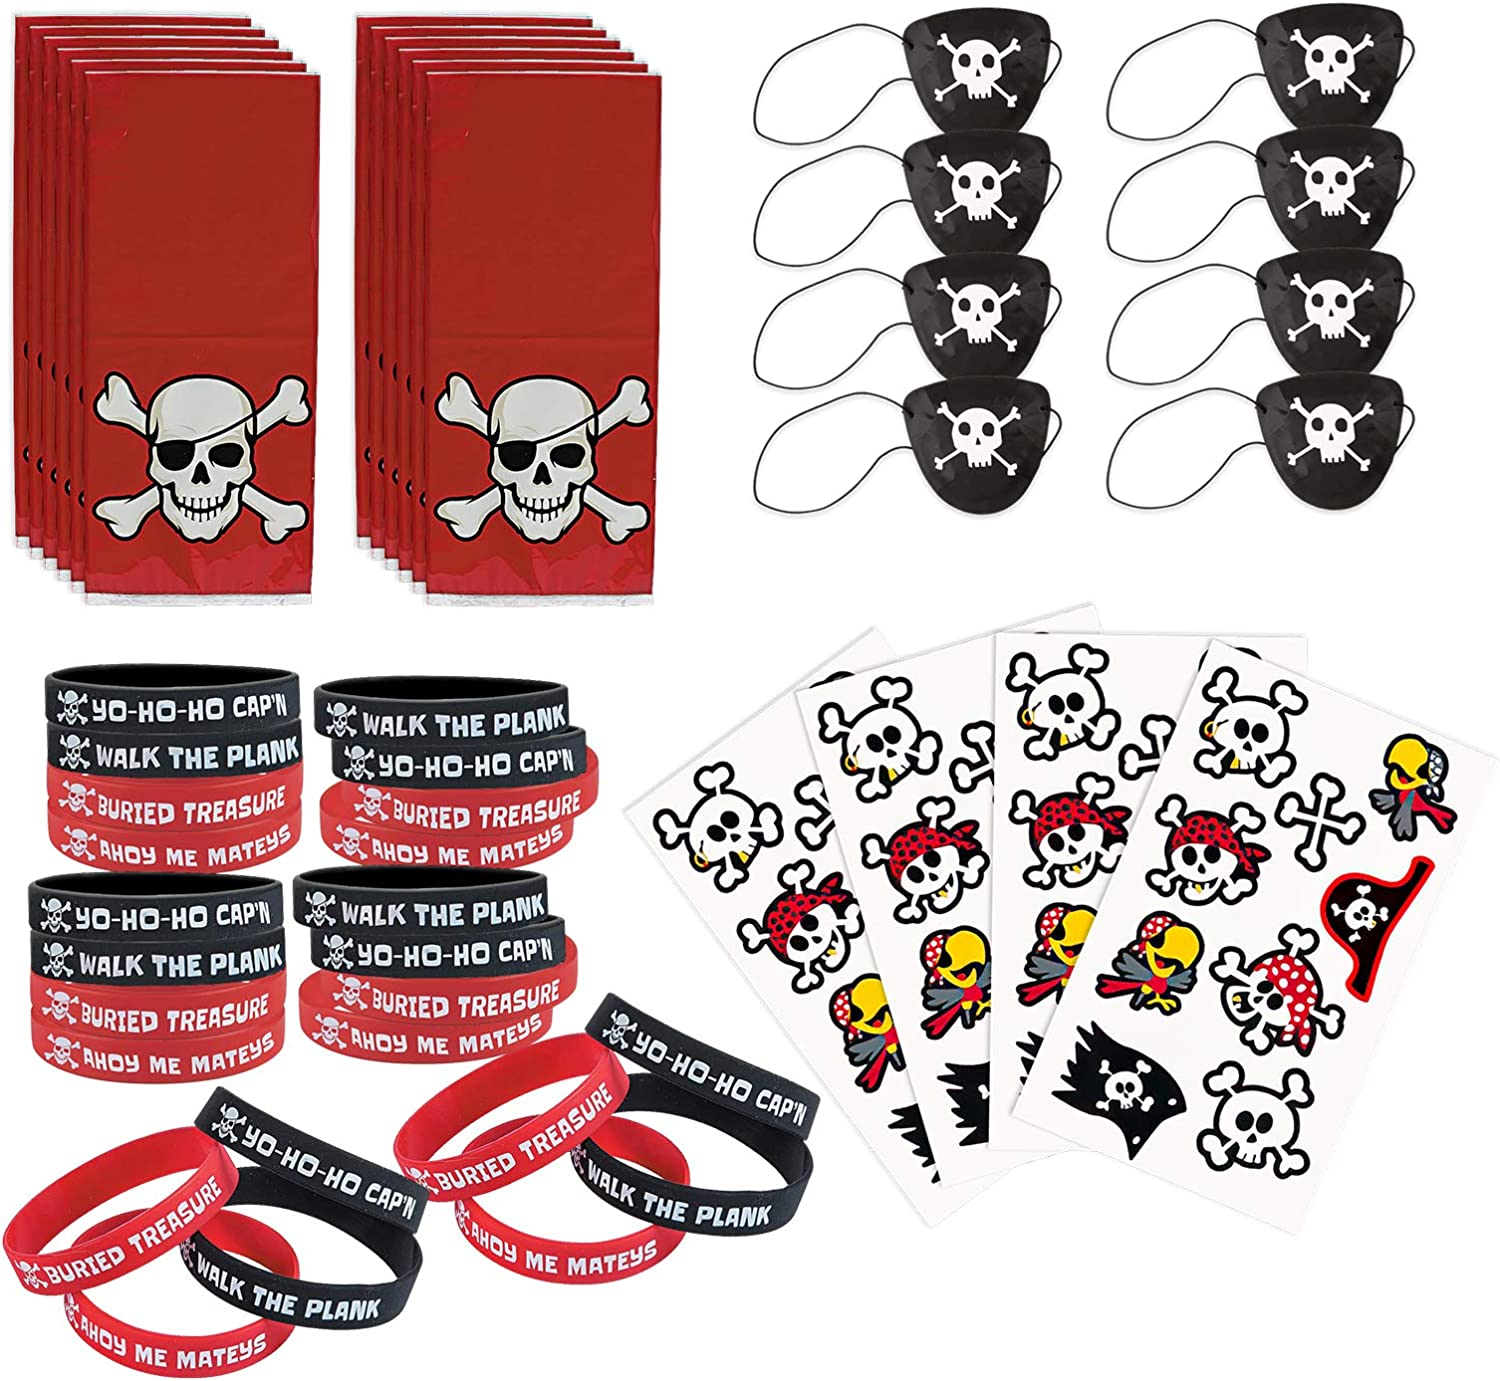 Pirate Party Favors - Goody Bags, Eye Patches, Bracelets, and Tattoos for 12 Guests